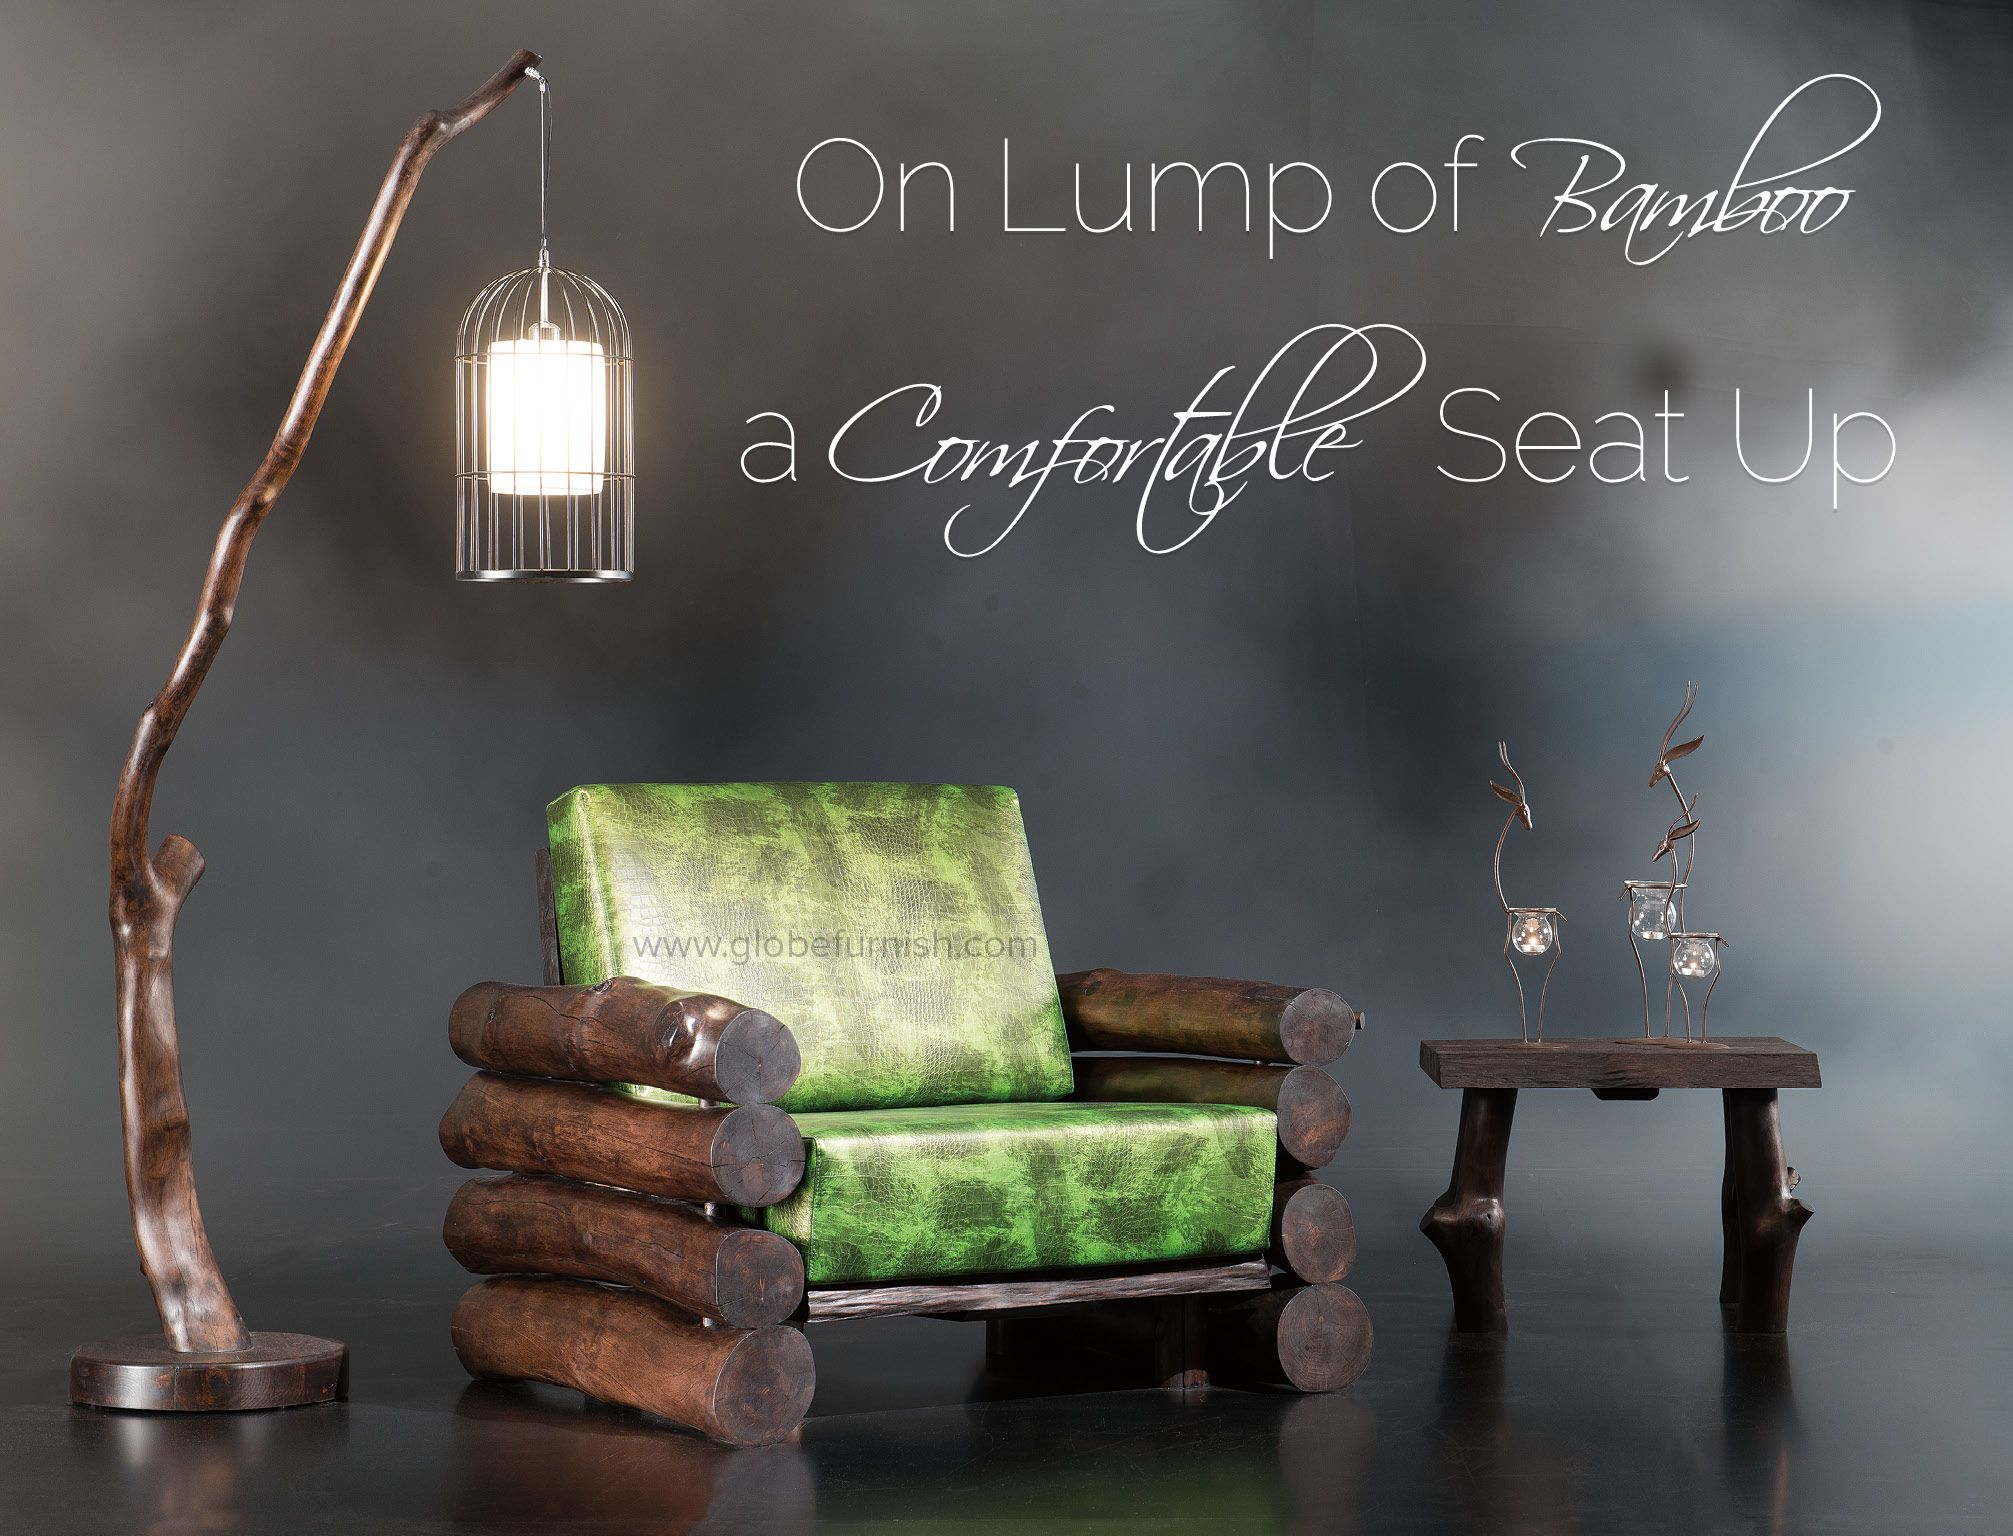 Bamboo Arm Chair For The Weekend Home Or A Oak Tree House Quotes